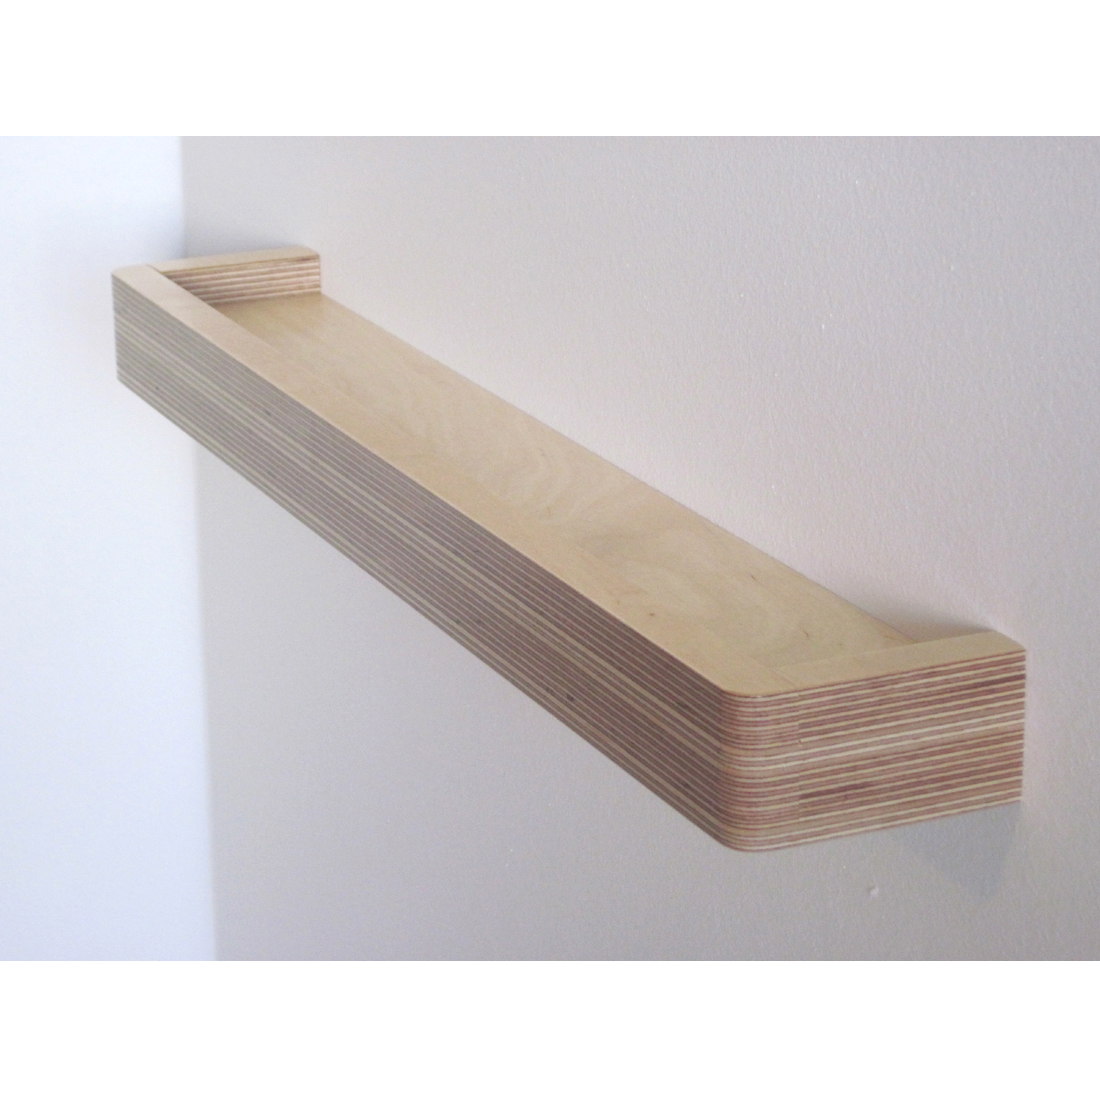 Picture Ledge Floating Shelf Homeware Furniture And